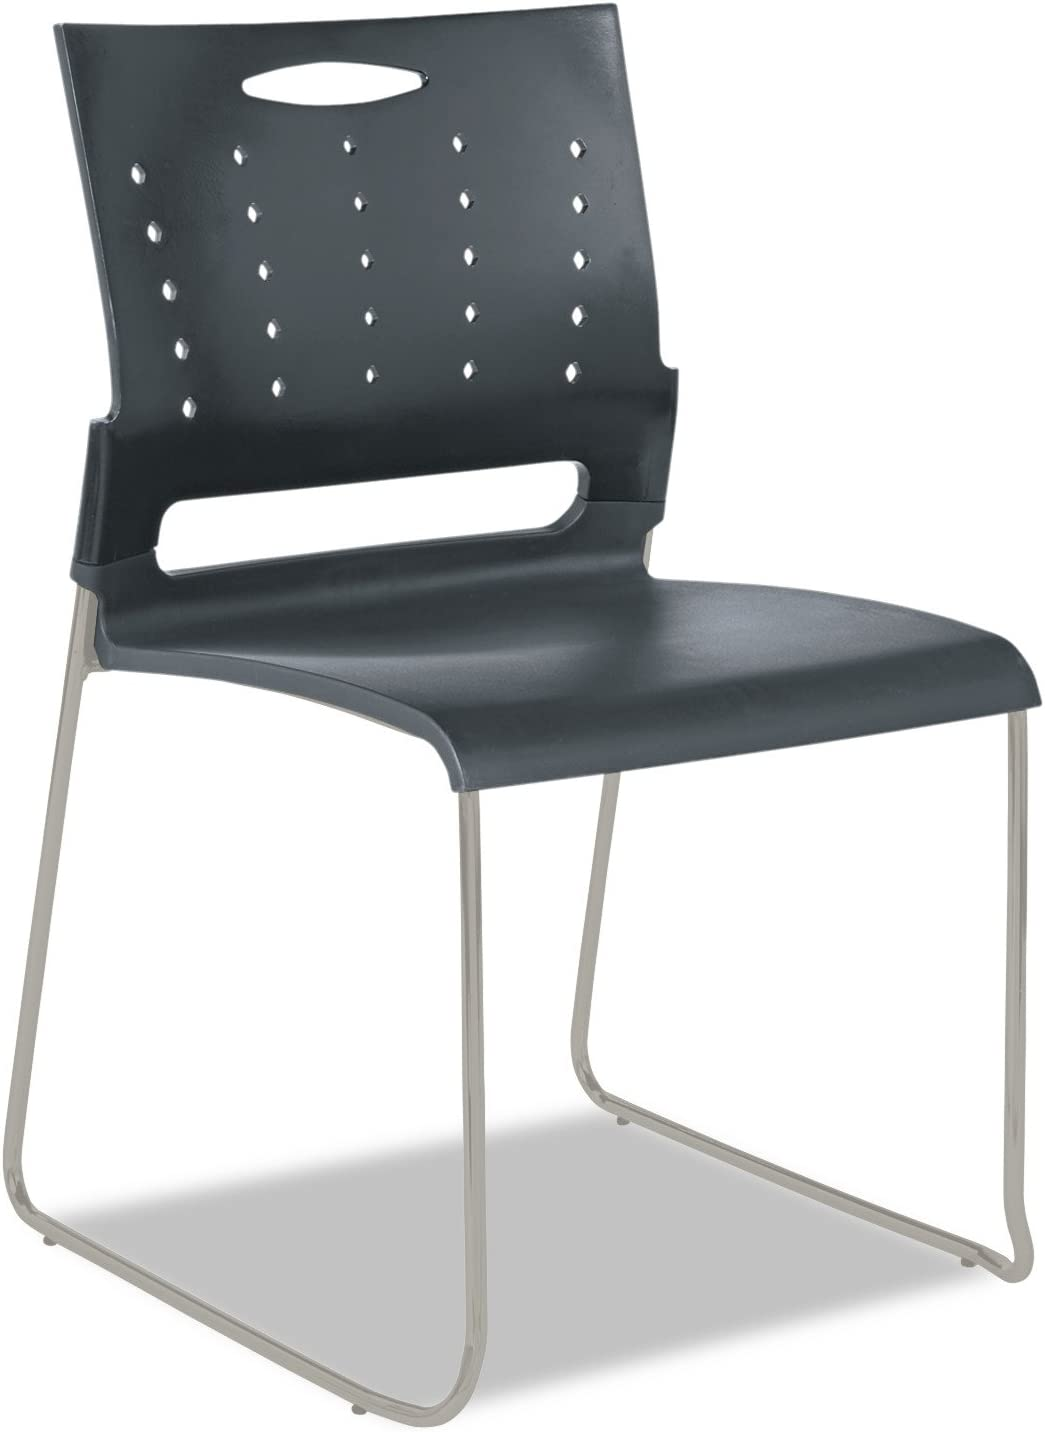 Alera Continental Series Perforated Back Stacking Chairs, Charcoal Gray Case of 4